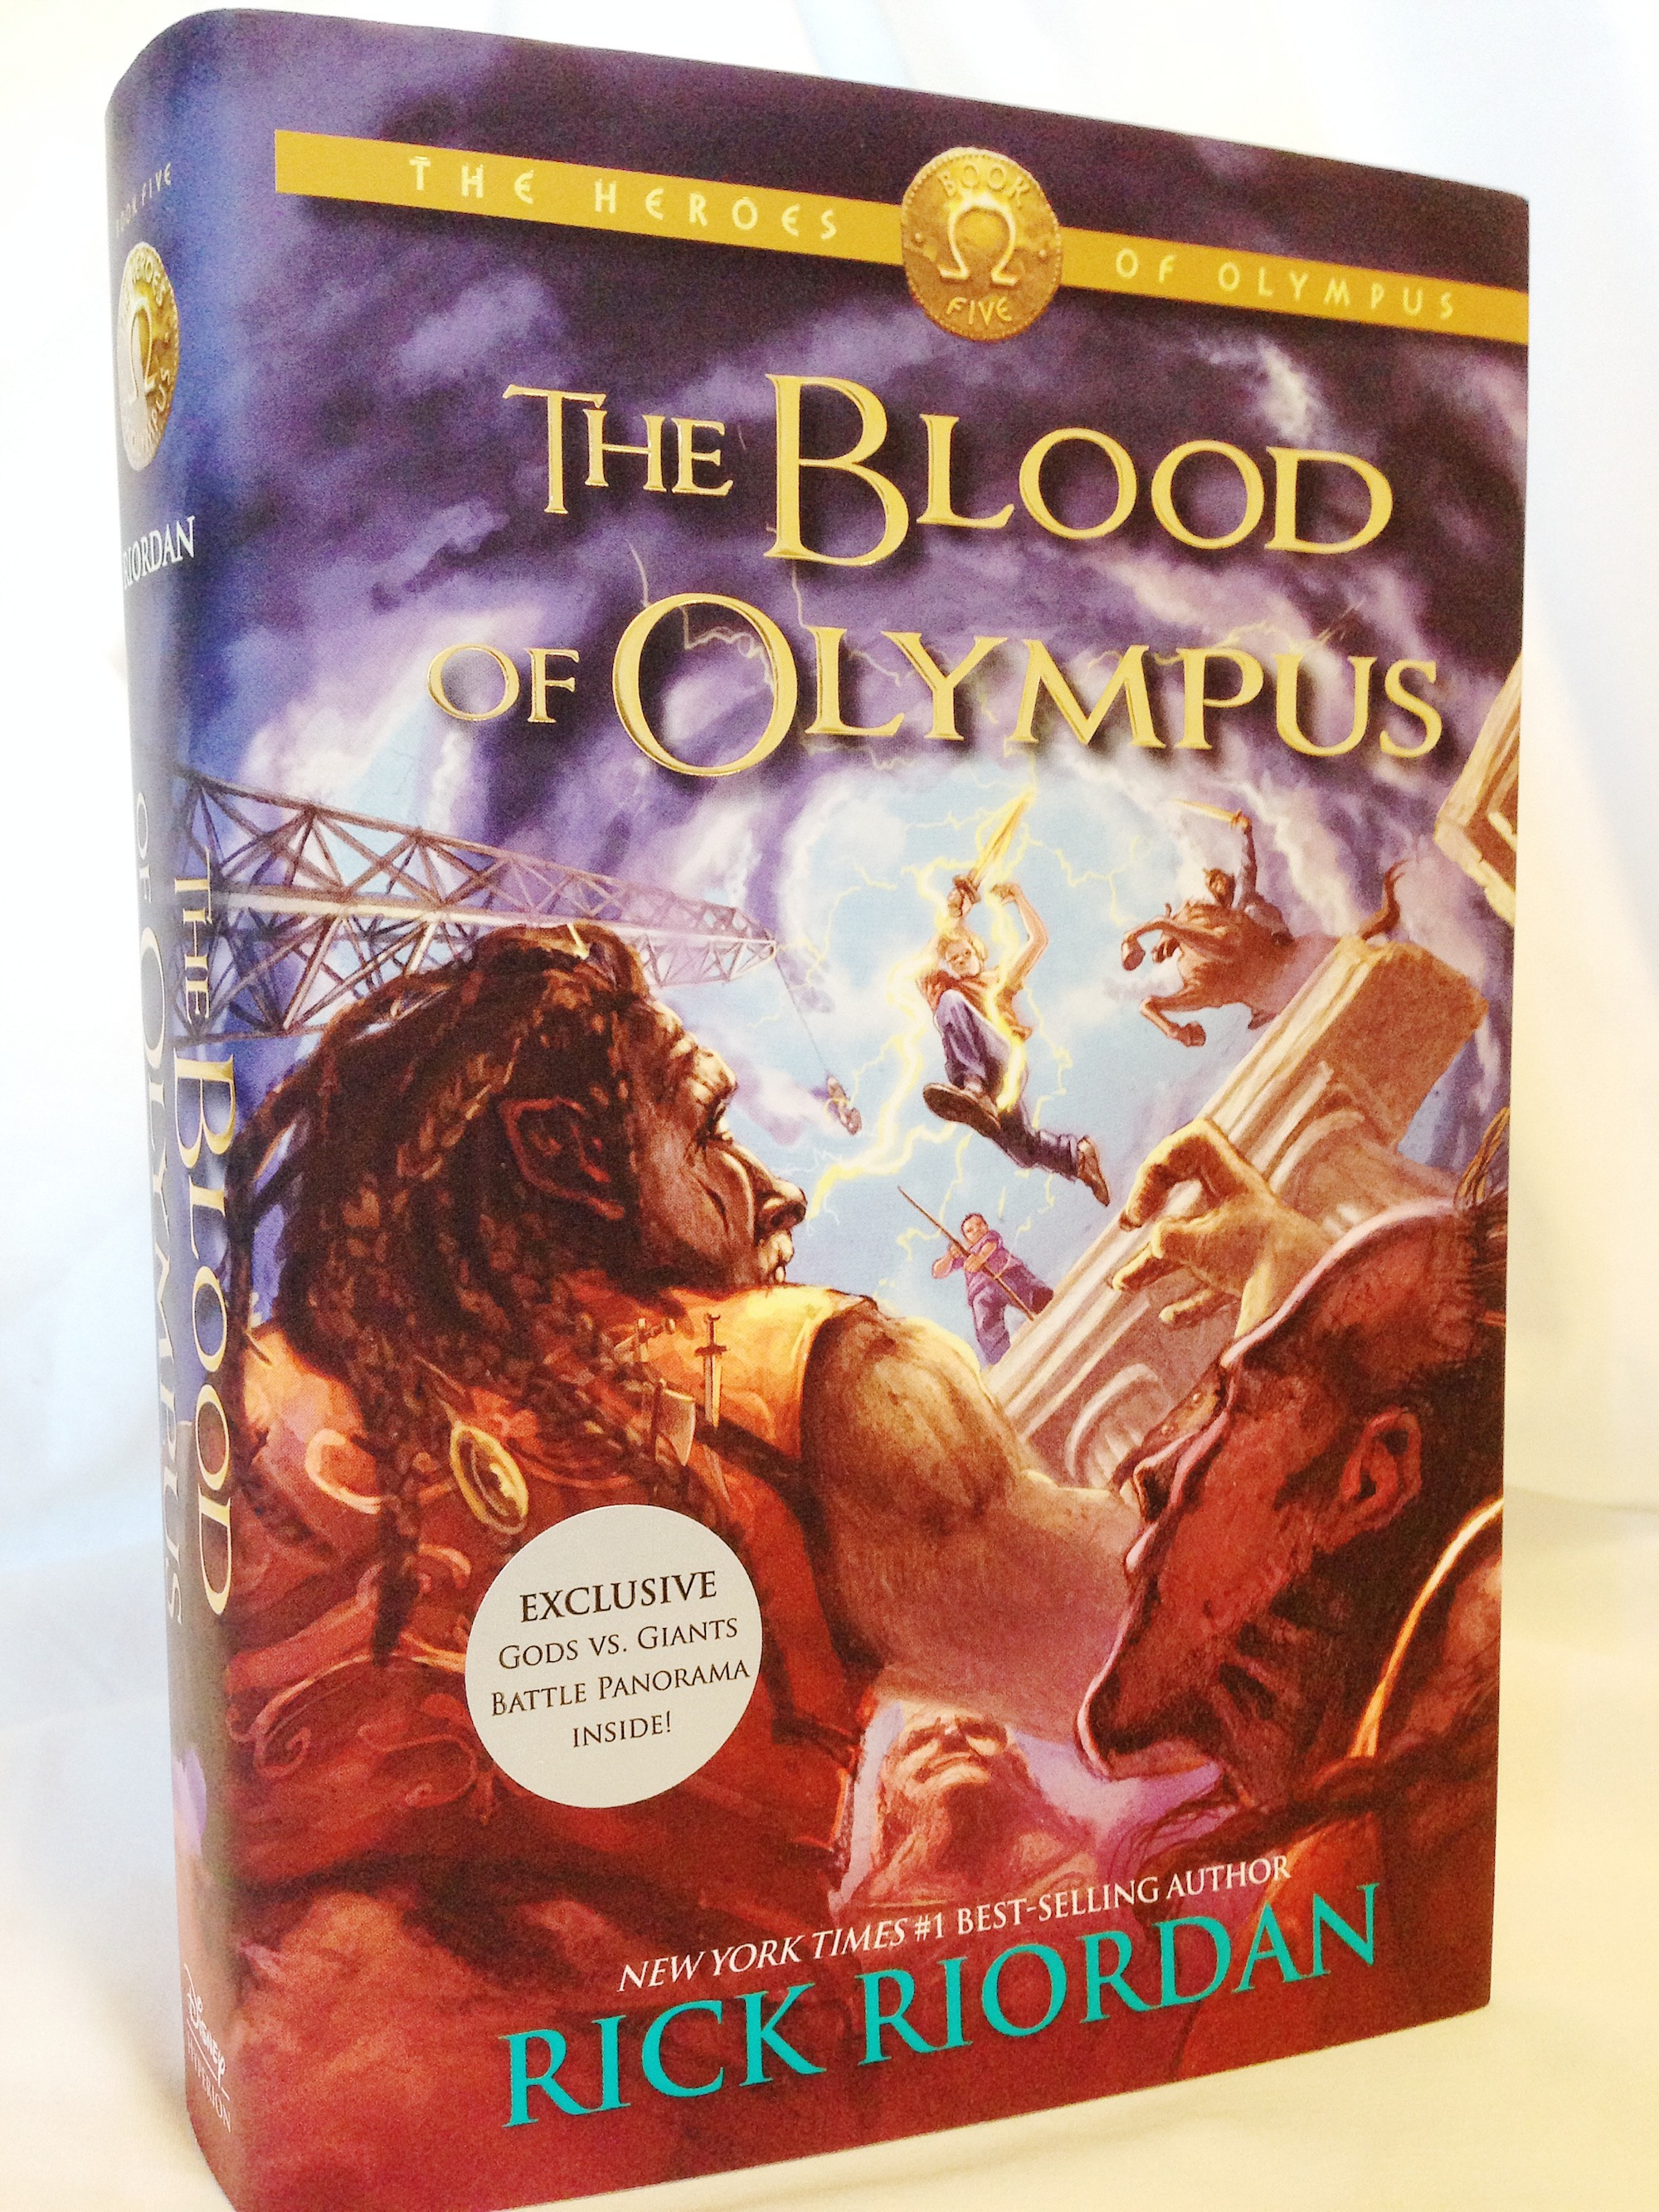 a comparison of the similarities and differences between rick riordans percy jackson and the olympia The lightening thief by rick riordan and percy jackson and the olympians: lightening thief (2010) sea of monsters by rick riordan and percy jackson and the olympians: sea of monsters (2013) photo courtesy of flickr creative commons and alba estevez g.